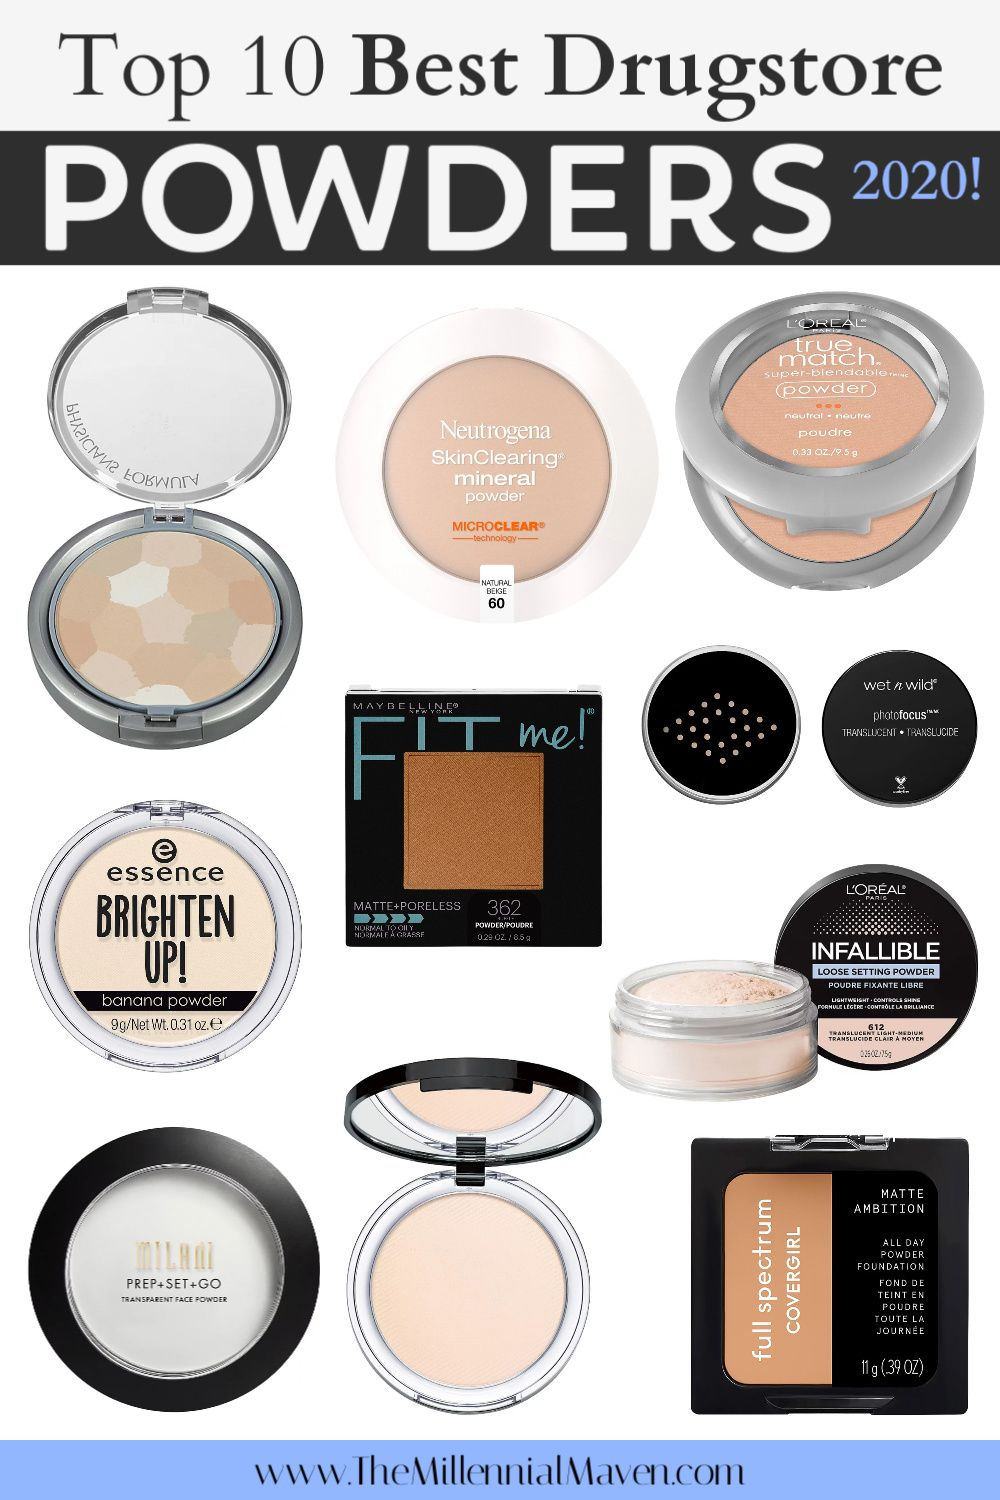 Updated 2020 Top 10 Best Powders At The Drugstore Best Drugstore Powders 2020 The Mille In 2020 Best Drugstore Powder Drugstore Powder Best Drugstore Face Powder